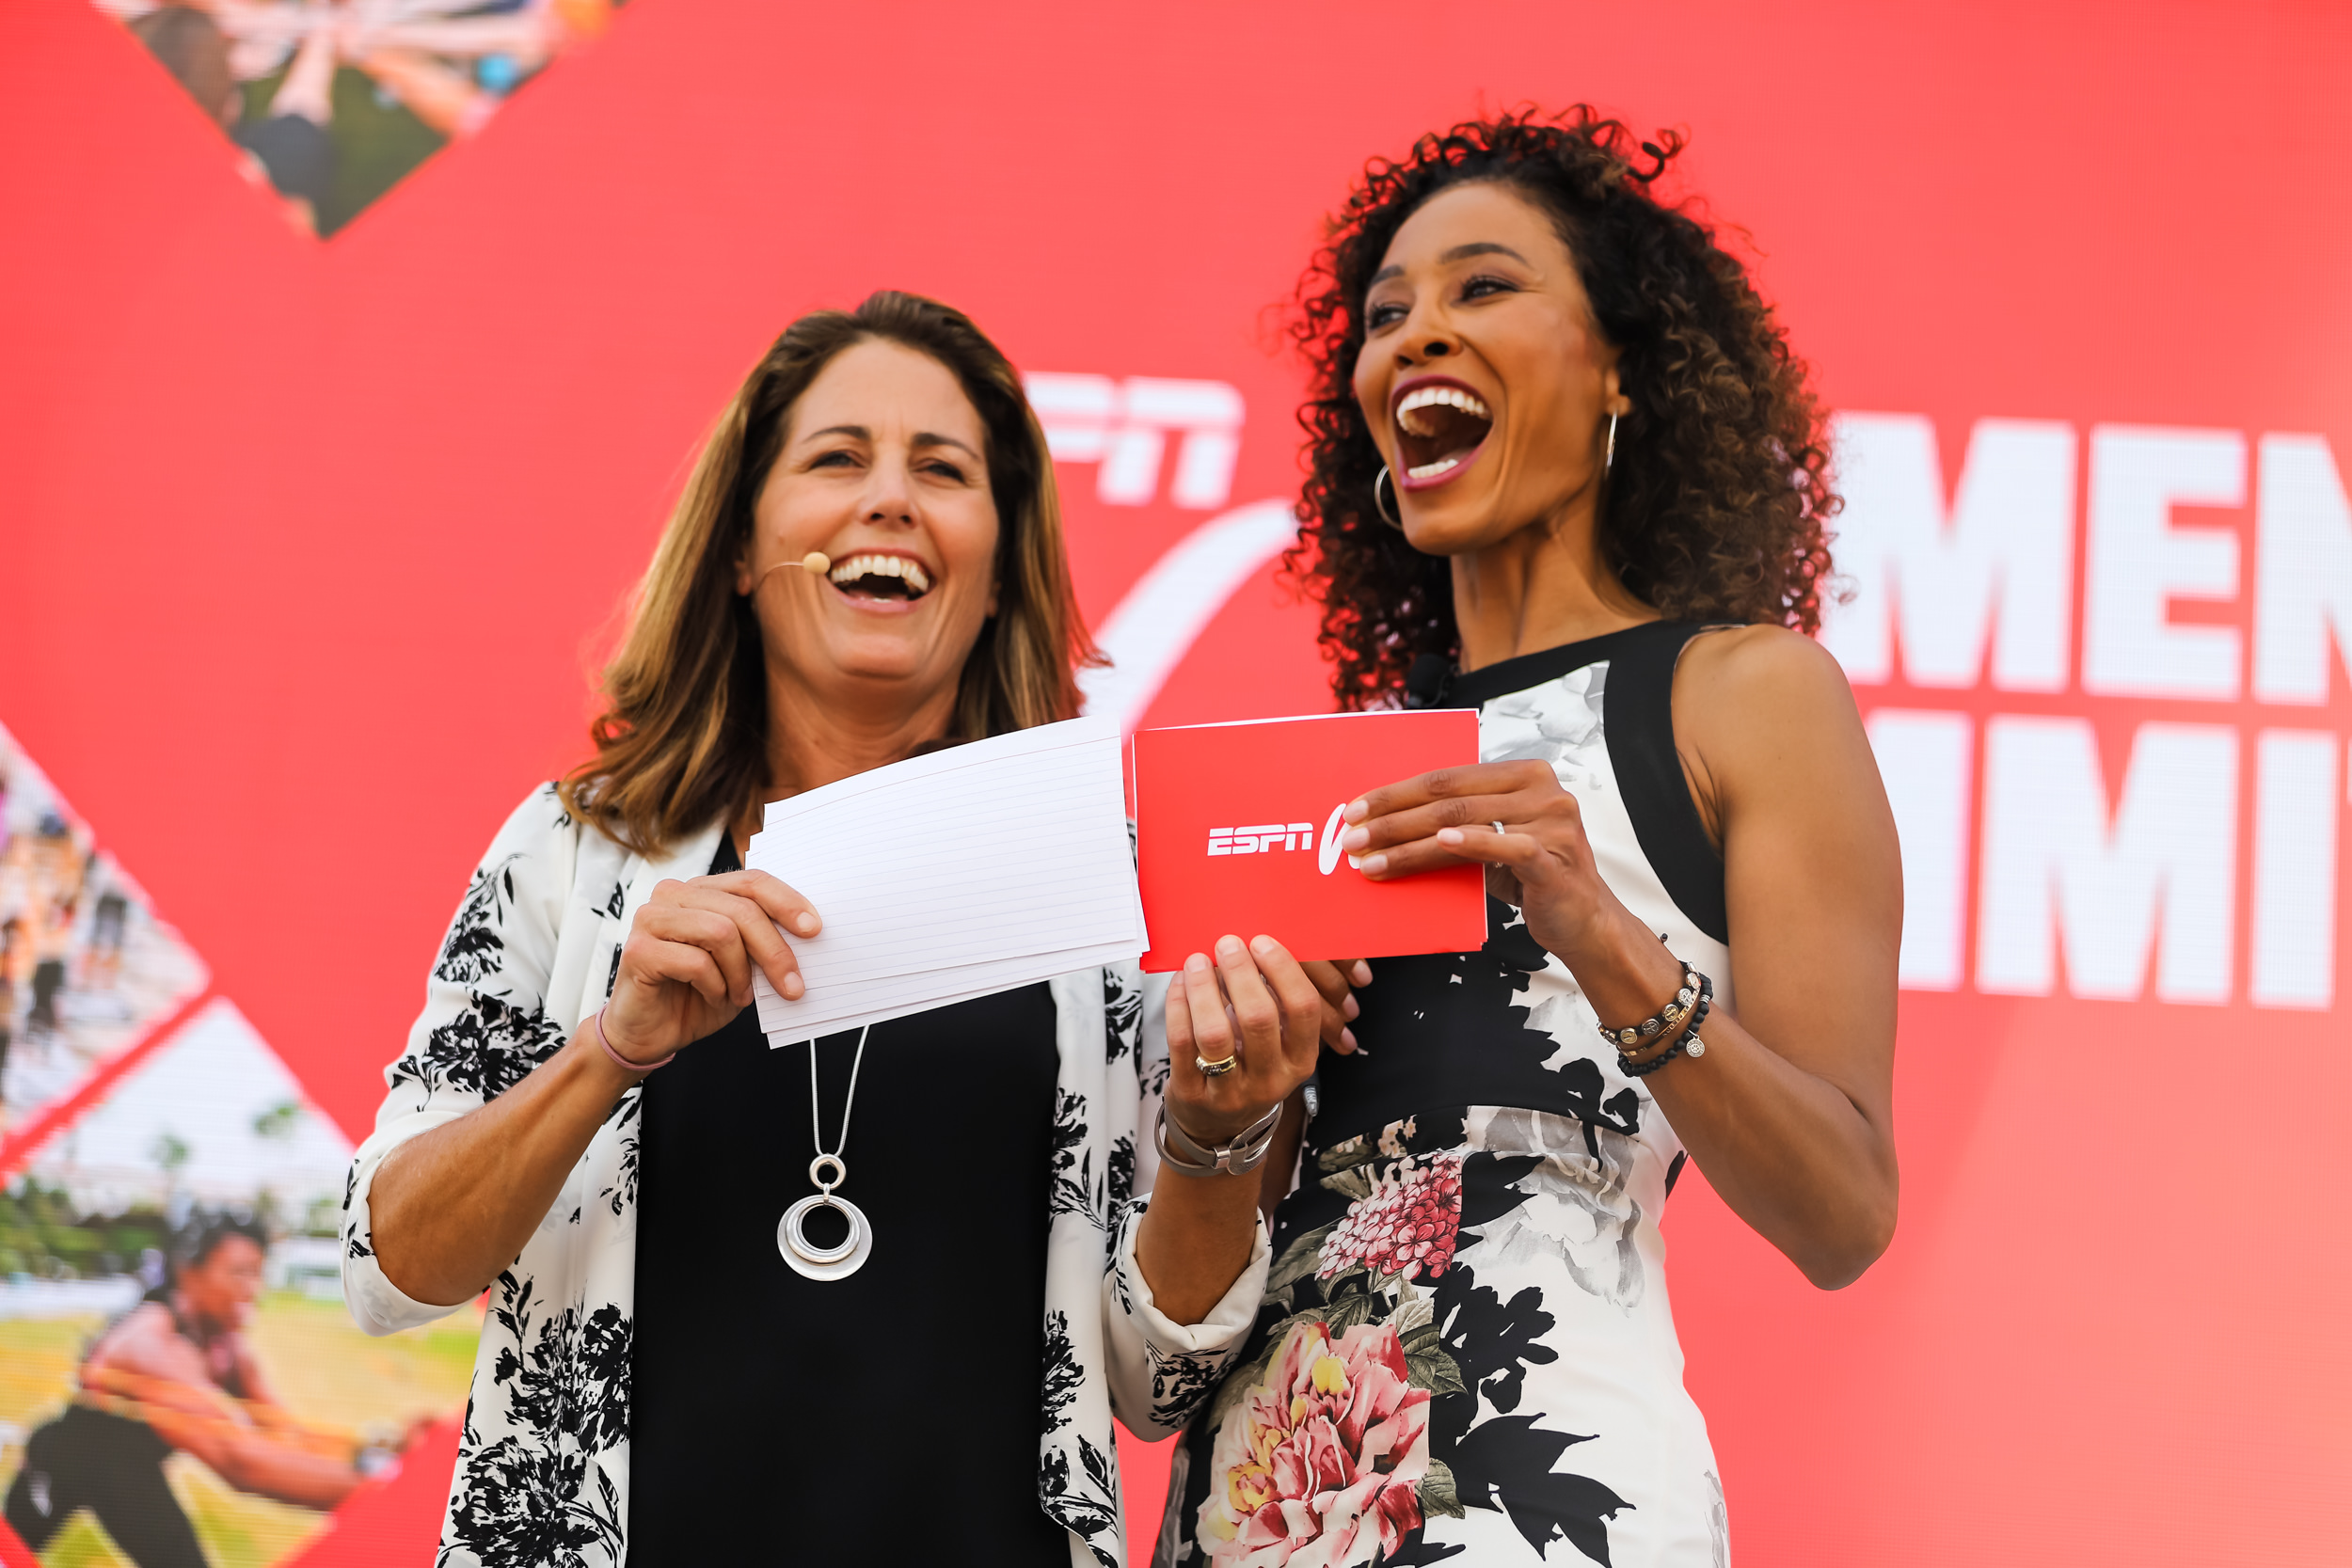 espnw_summit_2018_009